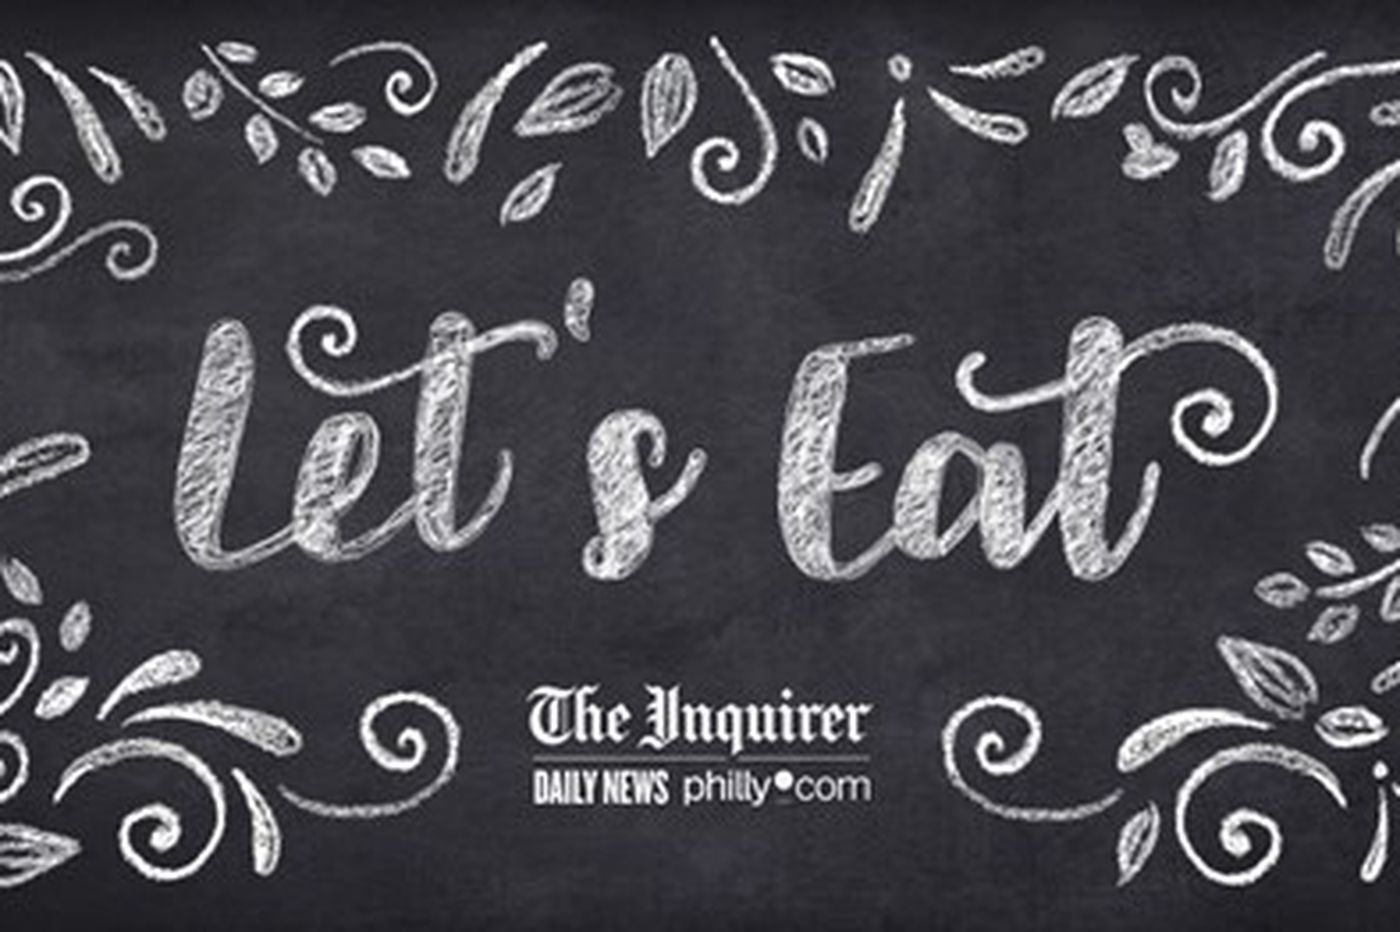 Let's Eat: High style, under the radar